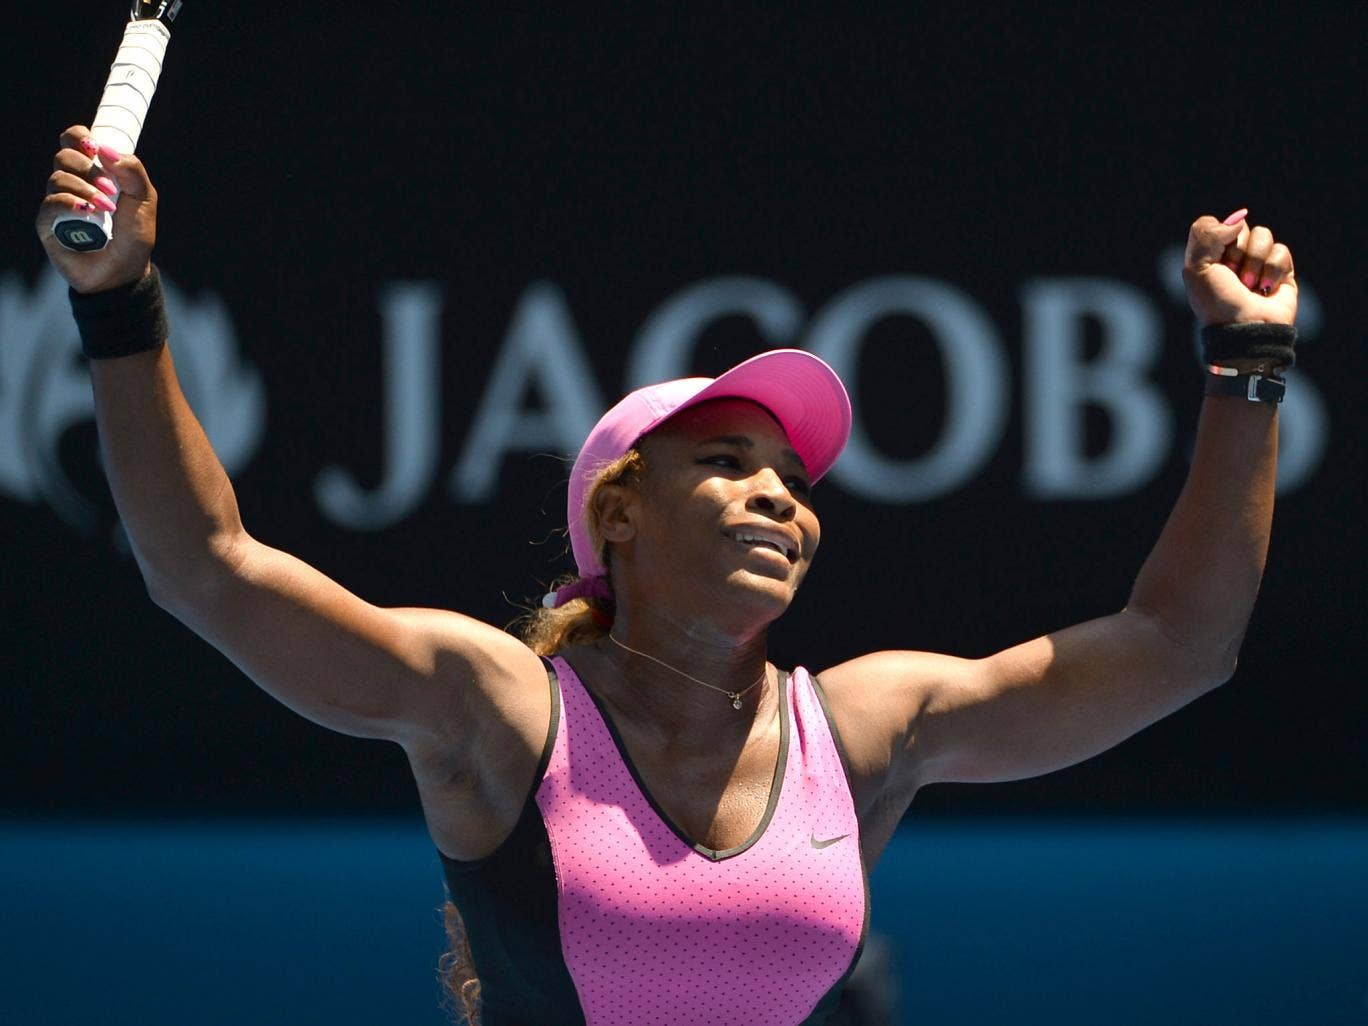 Serena Williams celebrates her third round victory over Daniela Hantuchova at the Australian Open